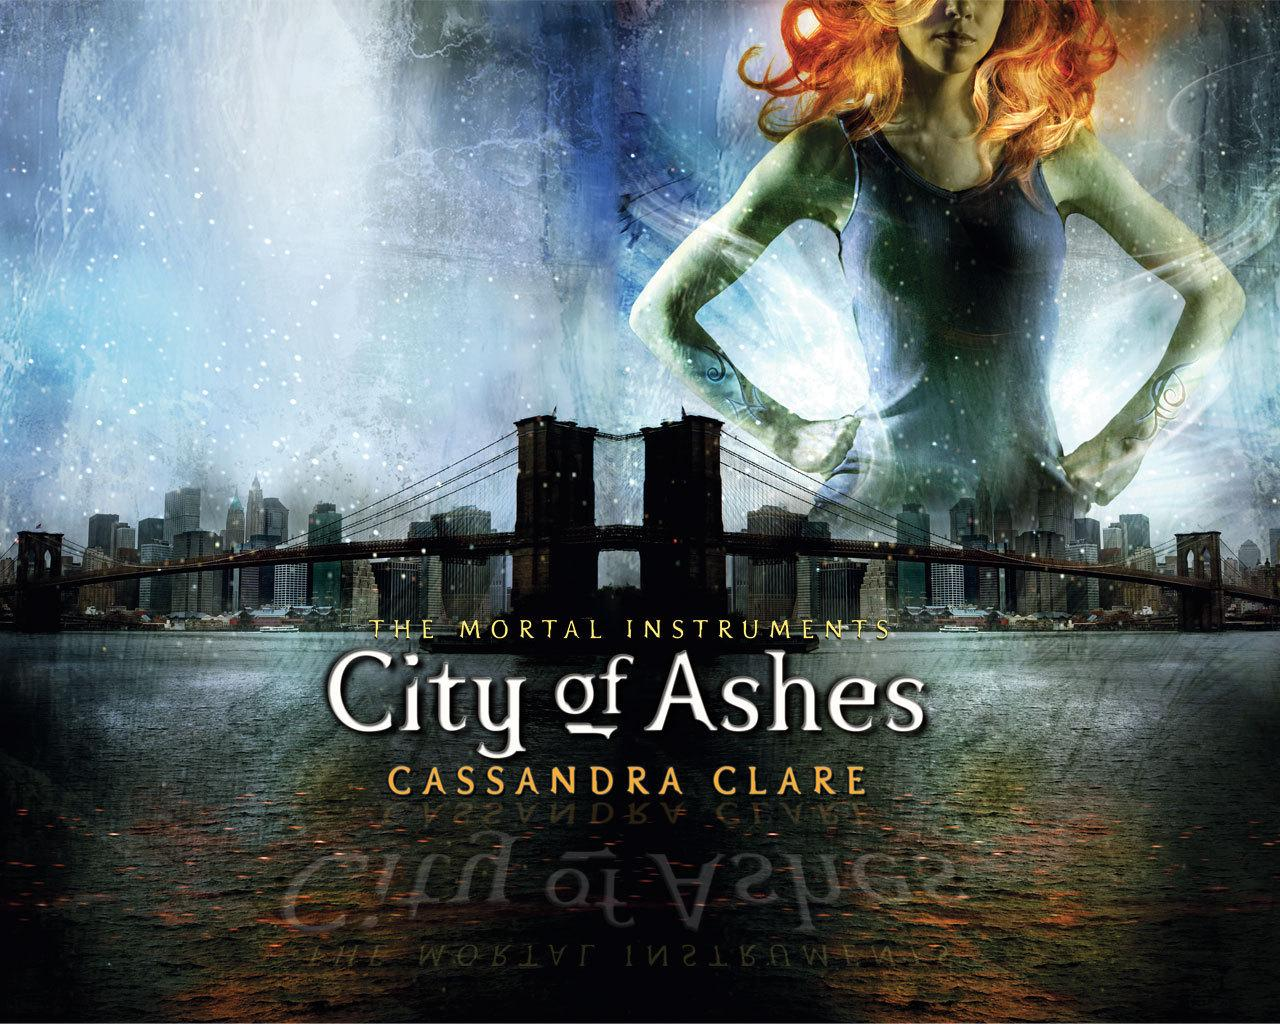 The Mortal Instruments: City of Ashes Movie Review English